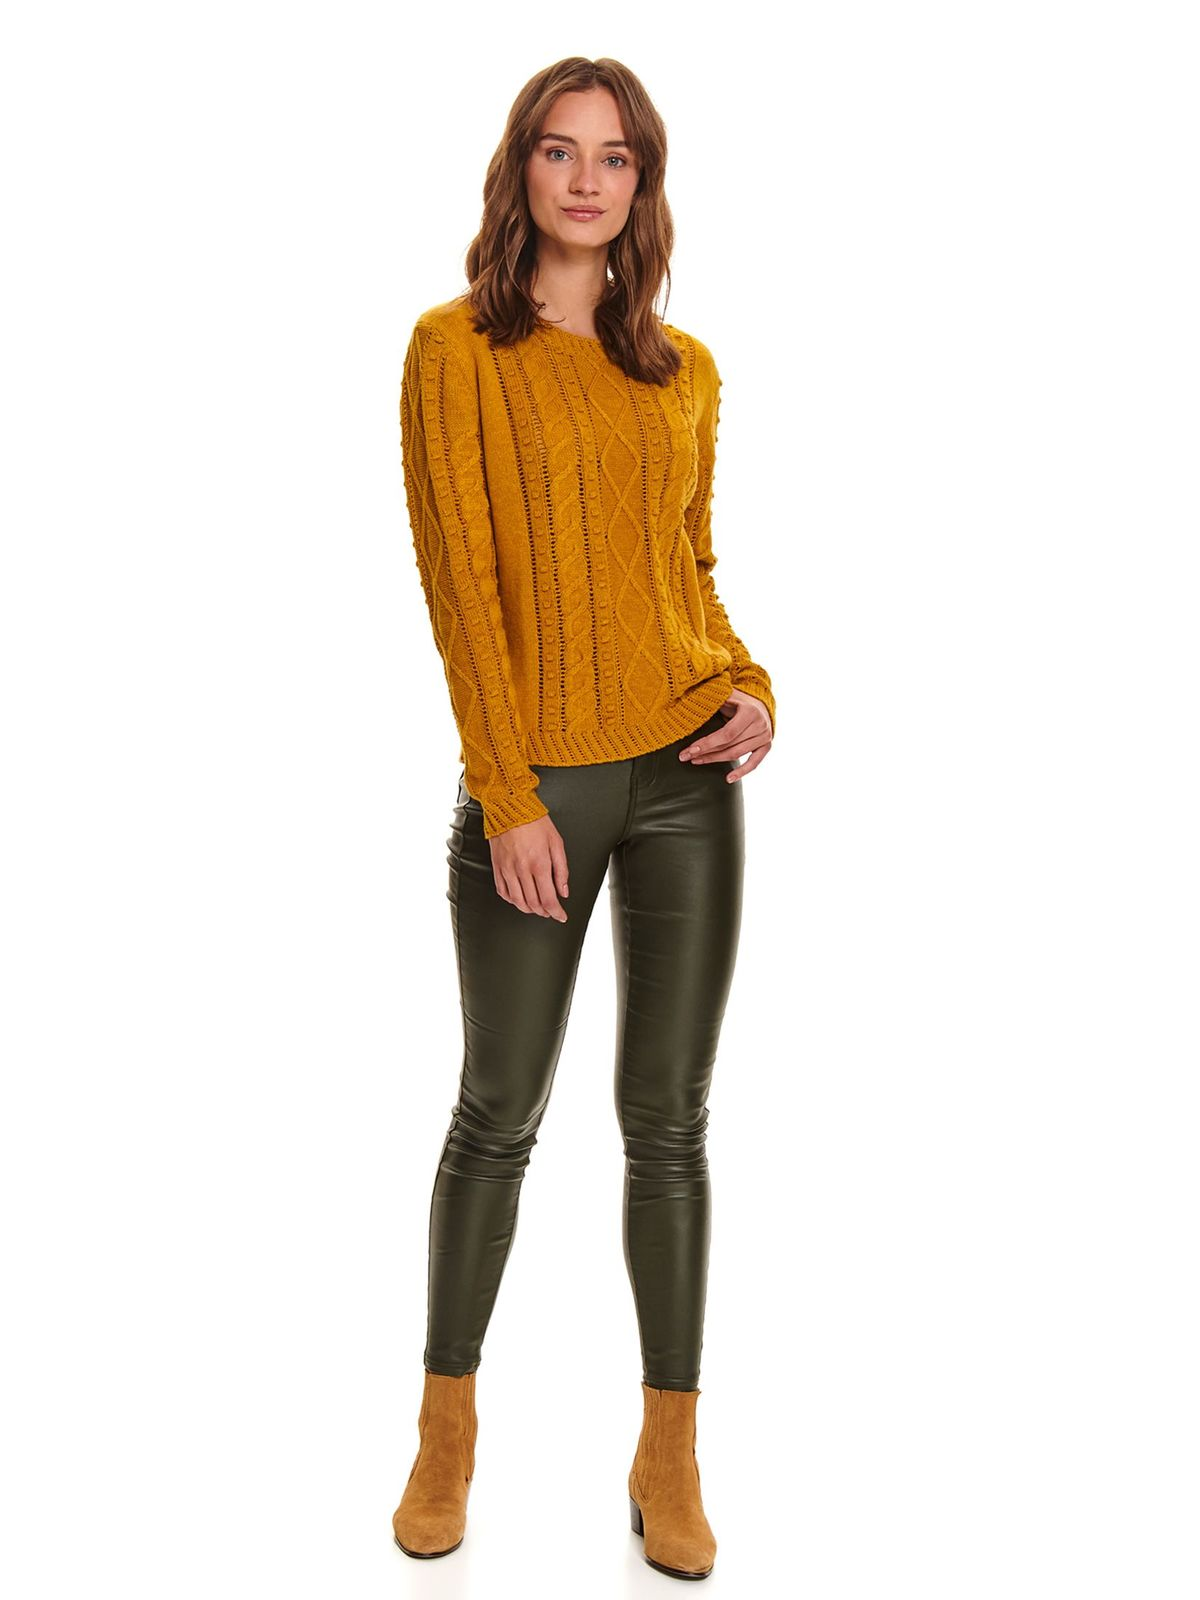 Yellow sweater casual knitted flared with rounded cleavage